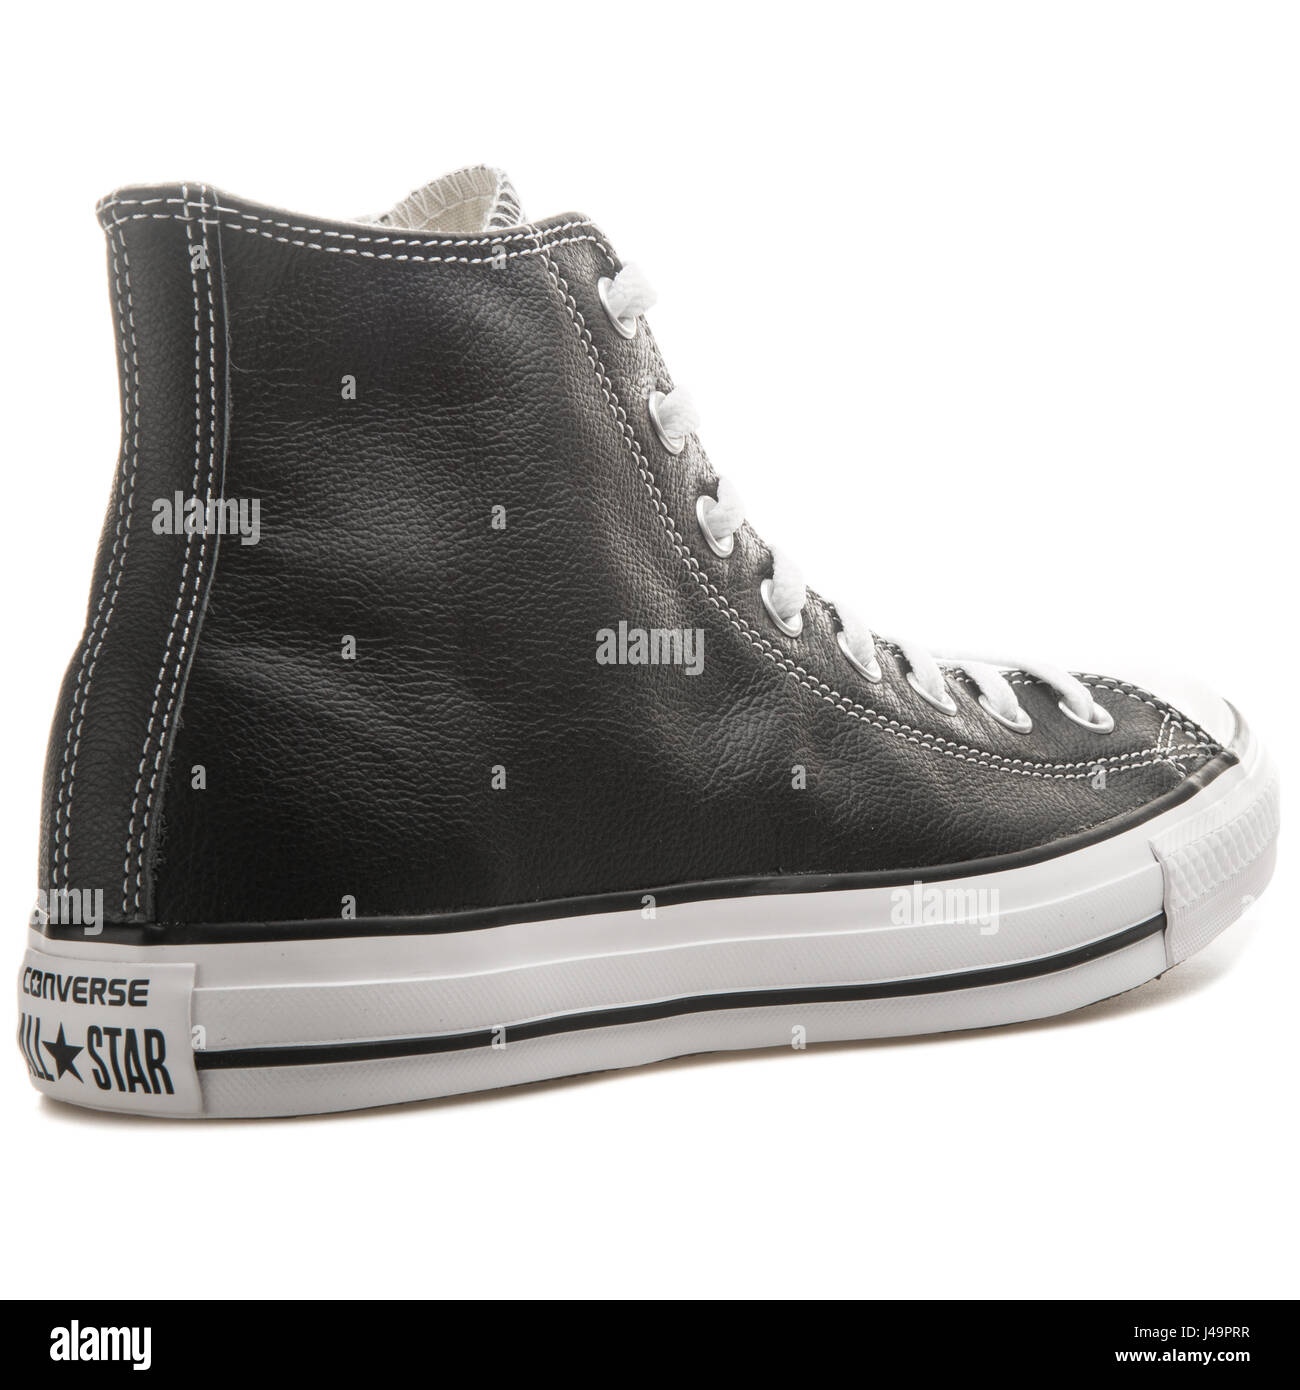 884f28ec9d7c Converse Chuck Taylor All Star Hi Black Leather Shoe - 132170C - Stock Image